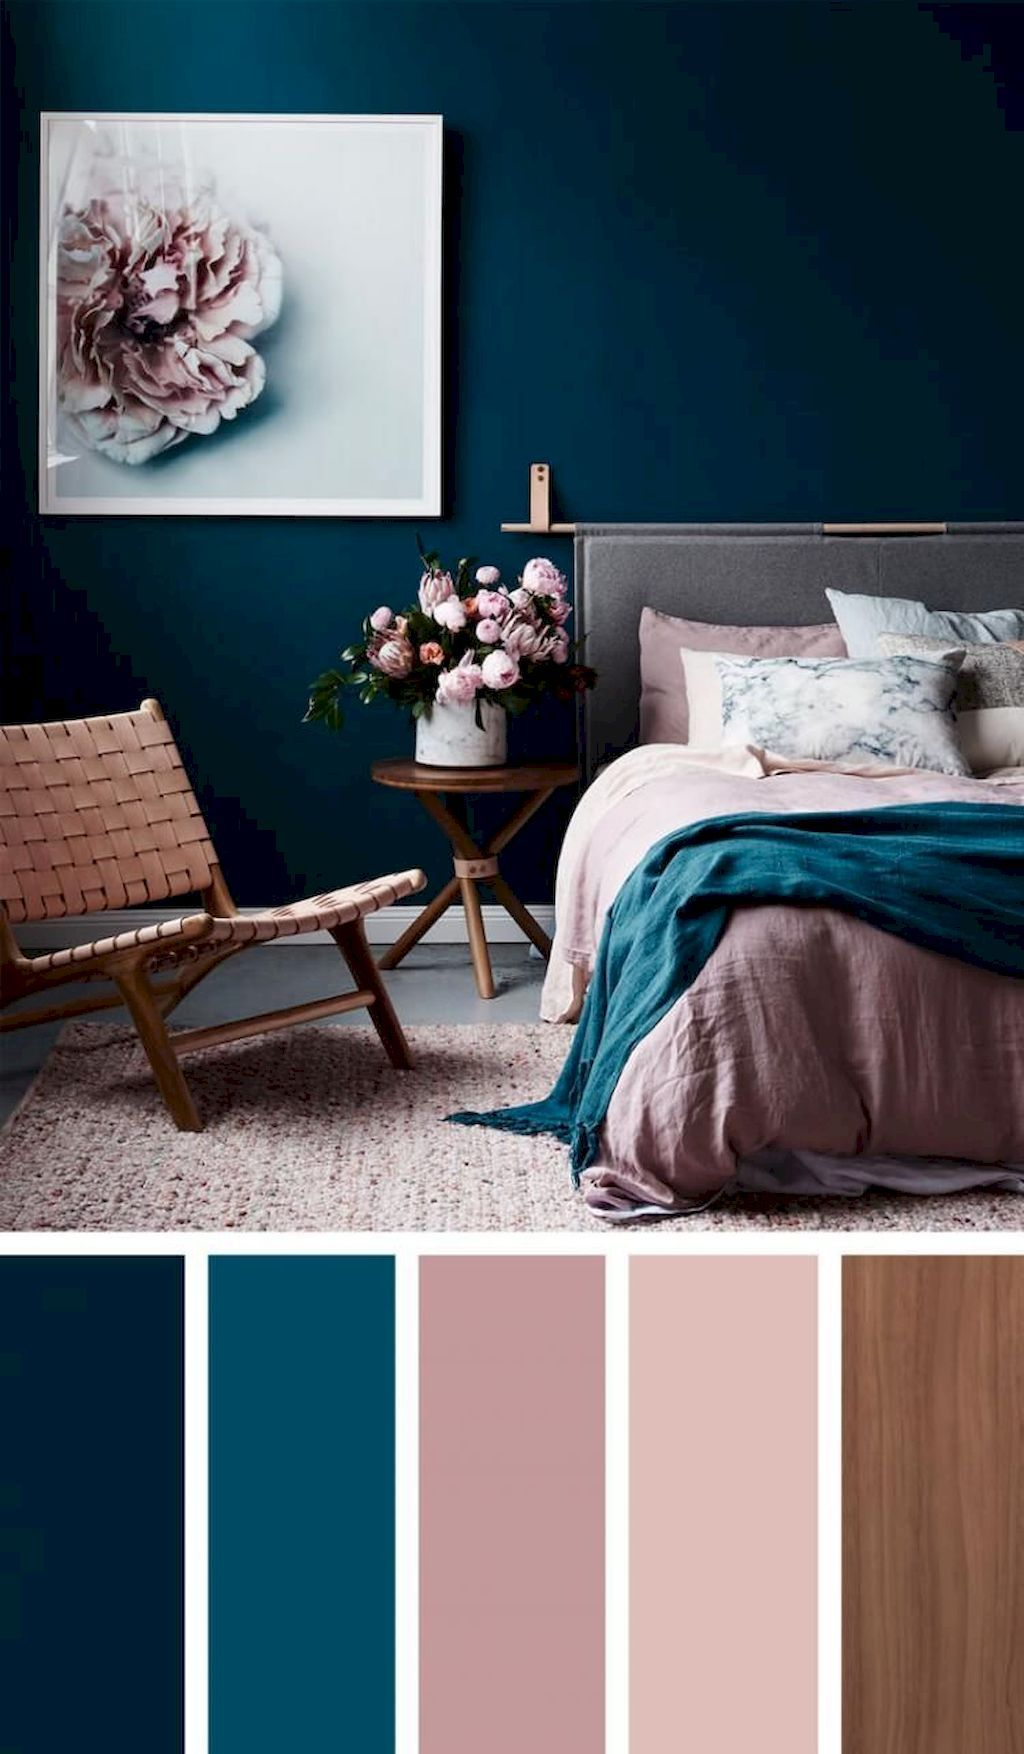 72 Simple Bedroom Decorating Ideas with Beautiful Color - BrowsyouRoom #bedroominspirations